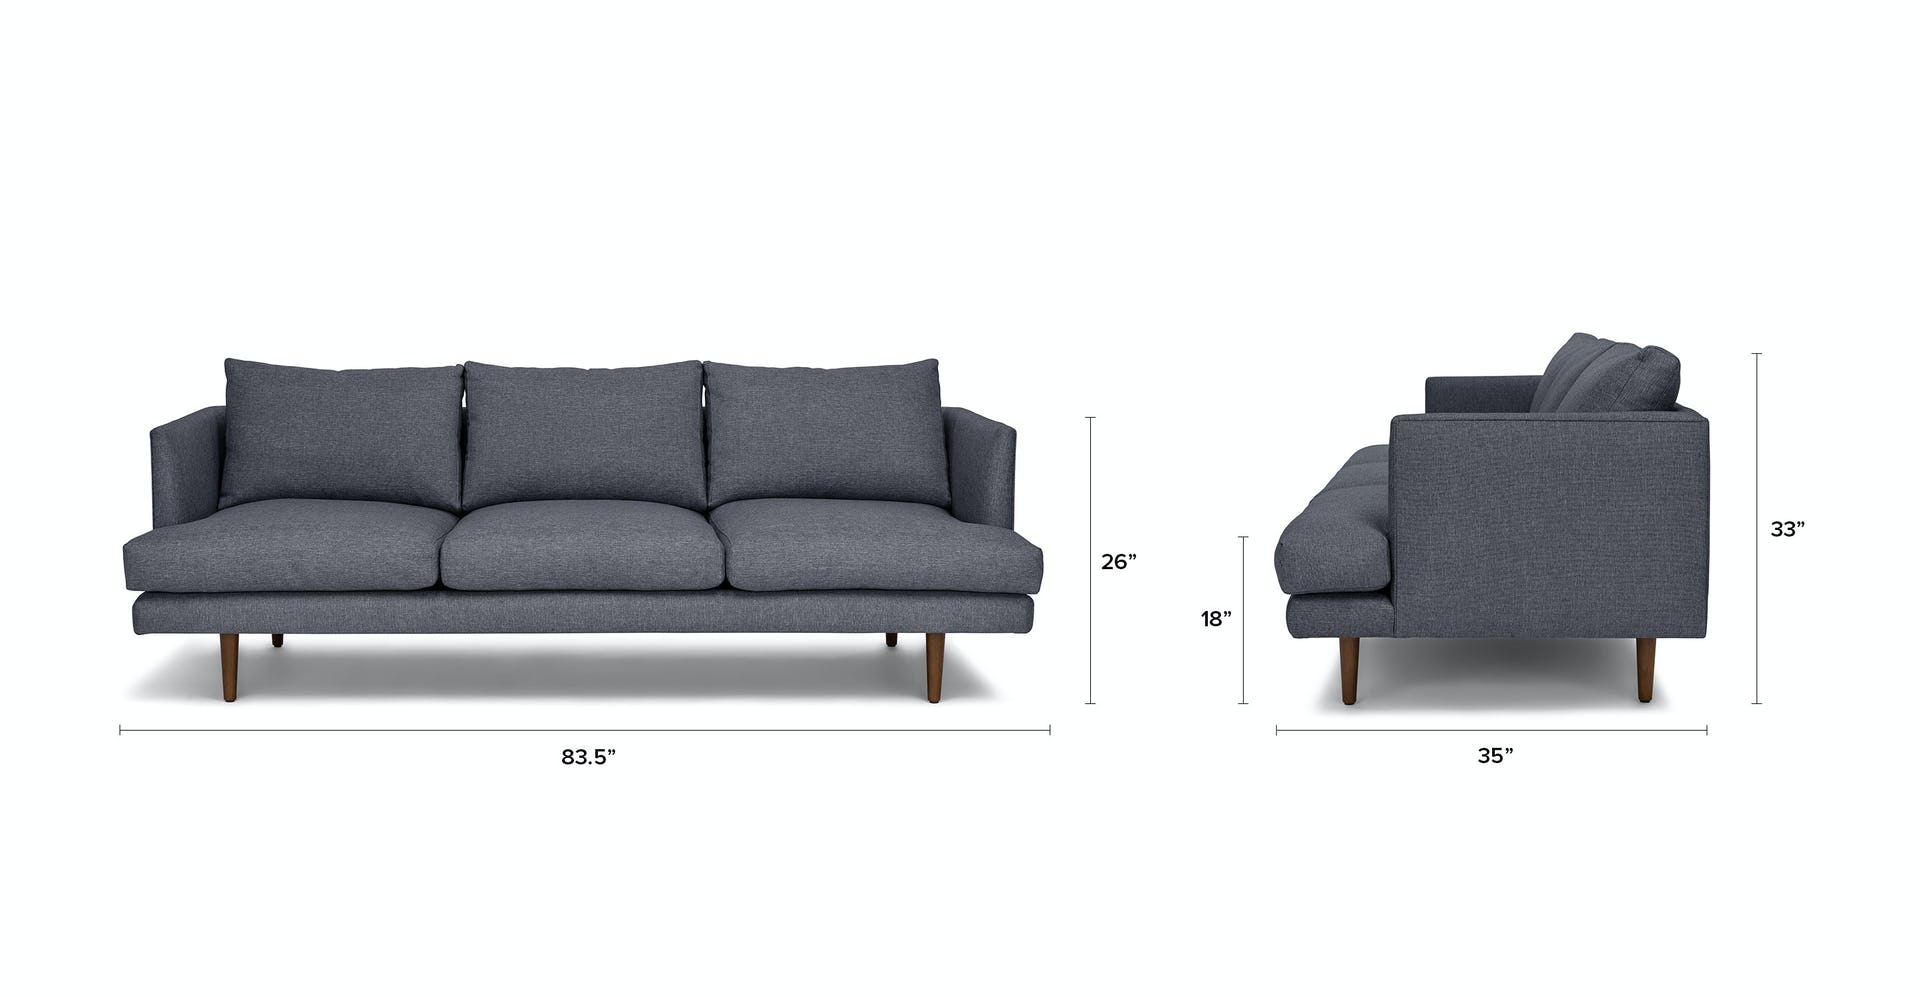 Awesome Stone Blue Burrard 3 Seater Fabric Sofa Article Gamerscity Chair Design For Home Gamerscityorg